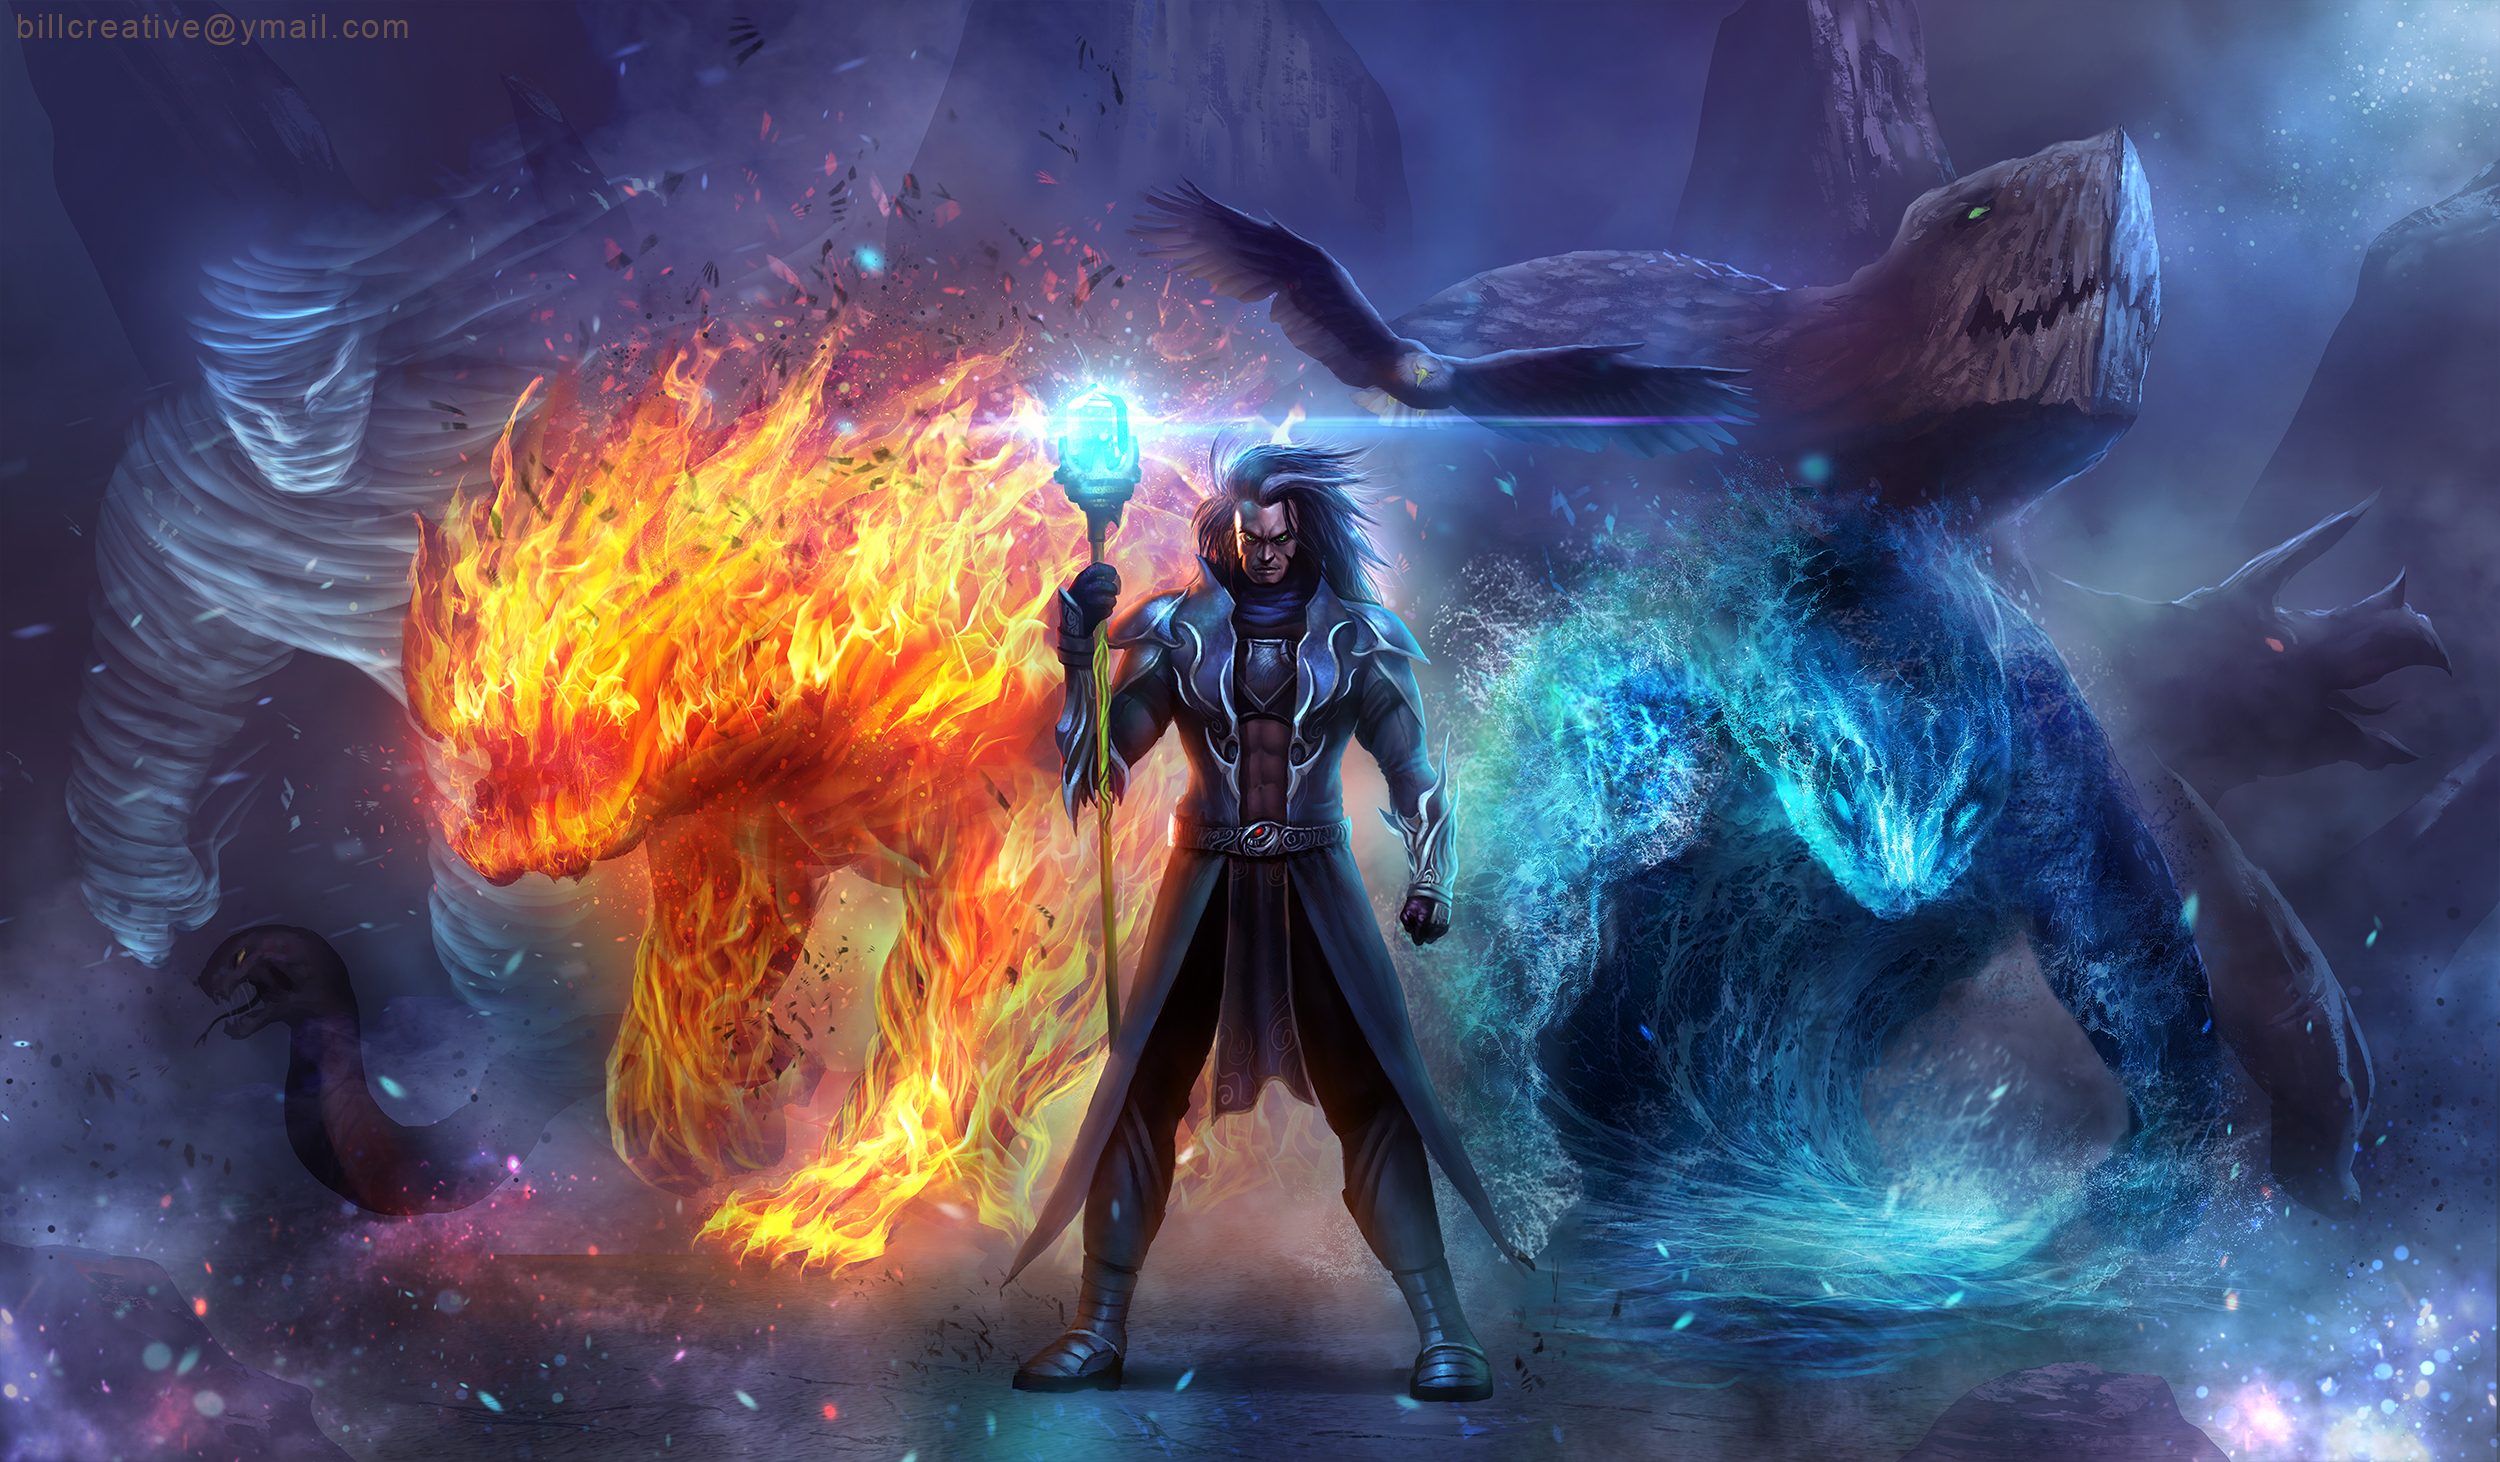 Elemental Summoner HD Wallpaper Background Image 2500x1462 2500x1462